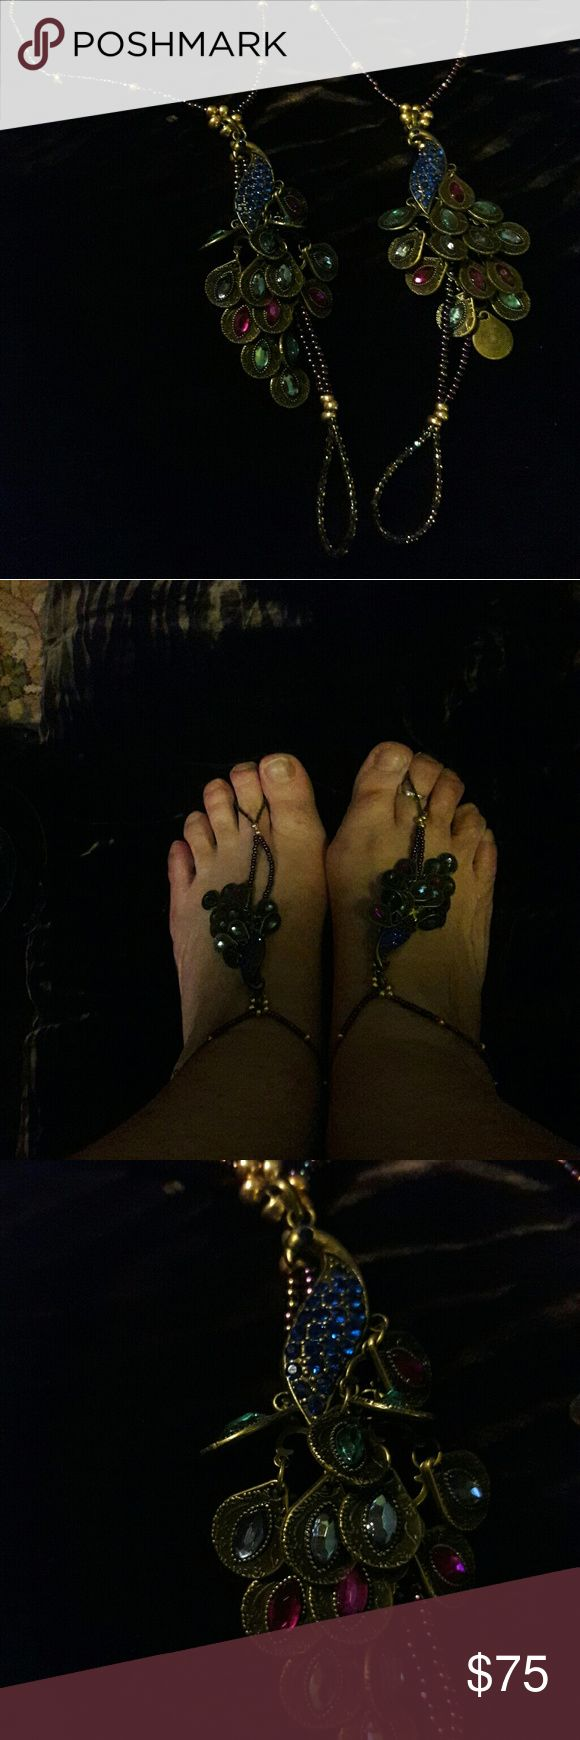 """Barefoot Sandals These are unique, one of a kind barefoot sandals made especially for """"big beautiful girls"""". The ankle bracelet is a total of 12"""" around...6"""" on each side. From the gold beads at the toe to the gold beads at the top of the peacocks head is a total of 4"""". The jewel tones in these beautiful sandals are stunning and oh so sexy! I am the designer and make jewelry for harder to fit ladies. Shoes Sandals"""